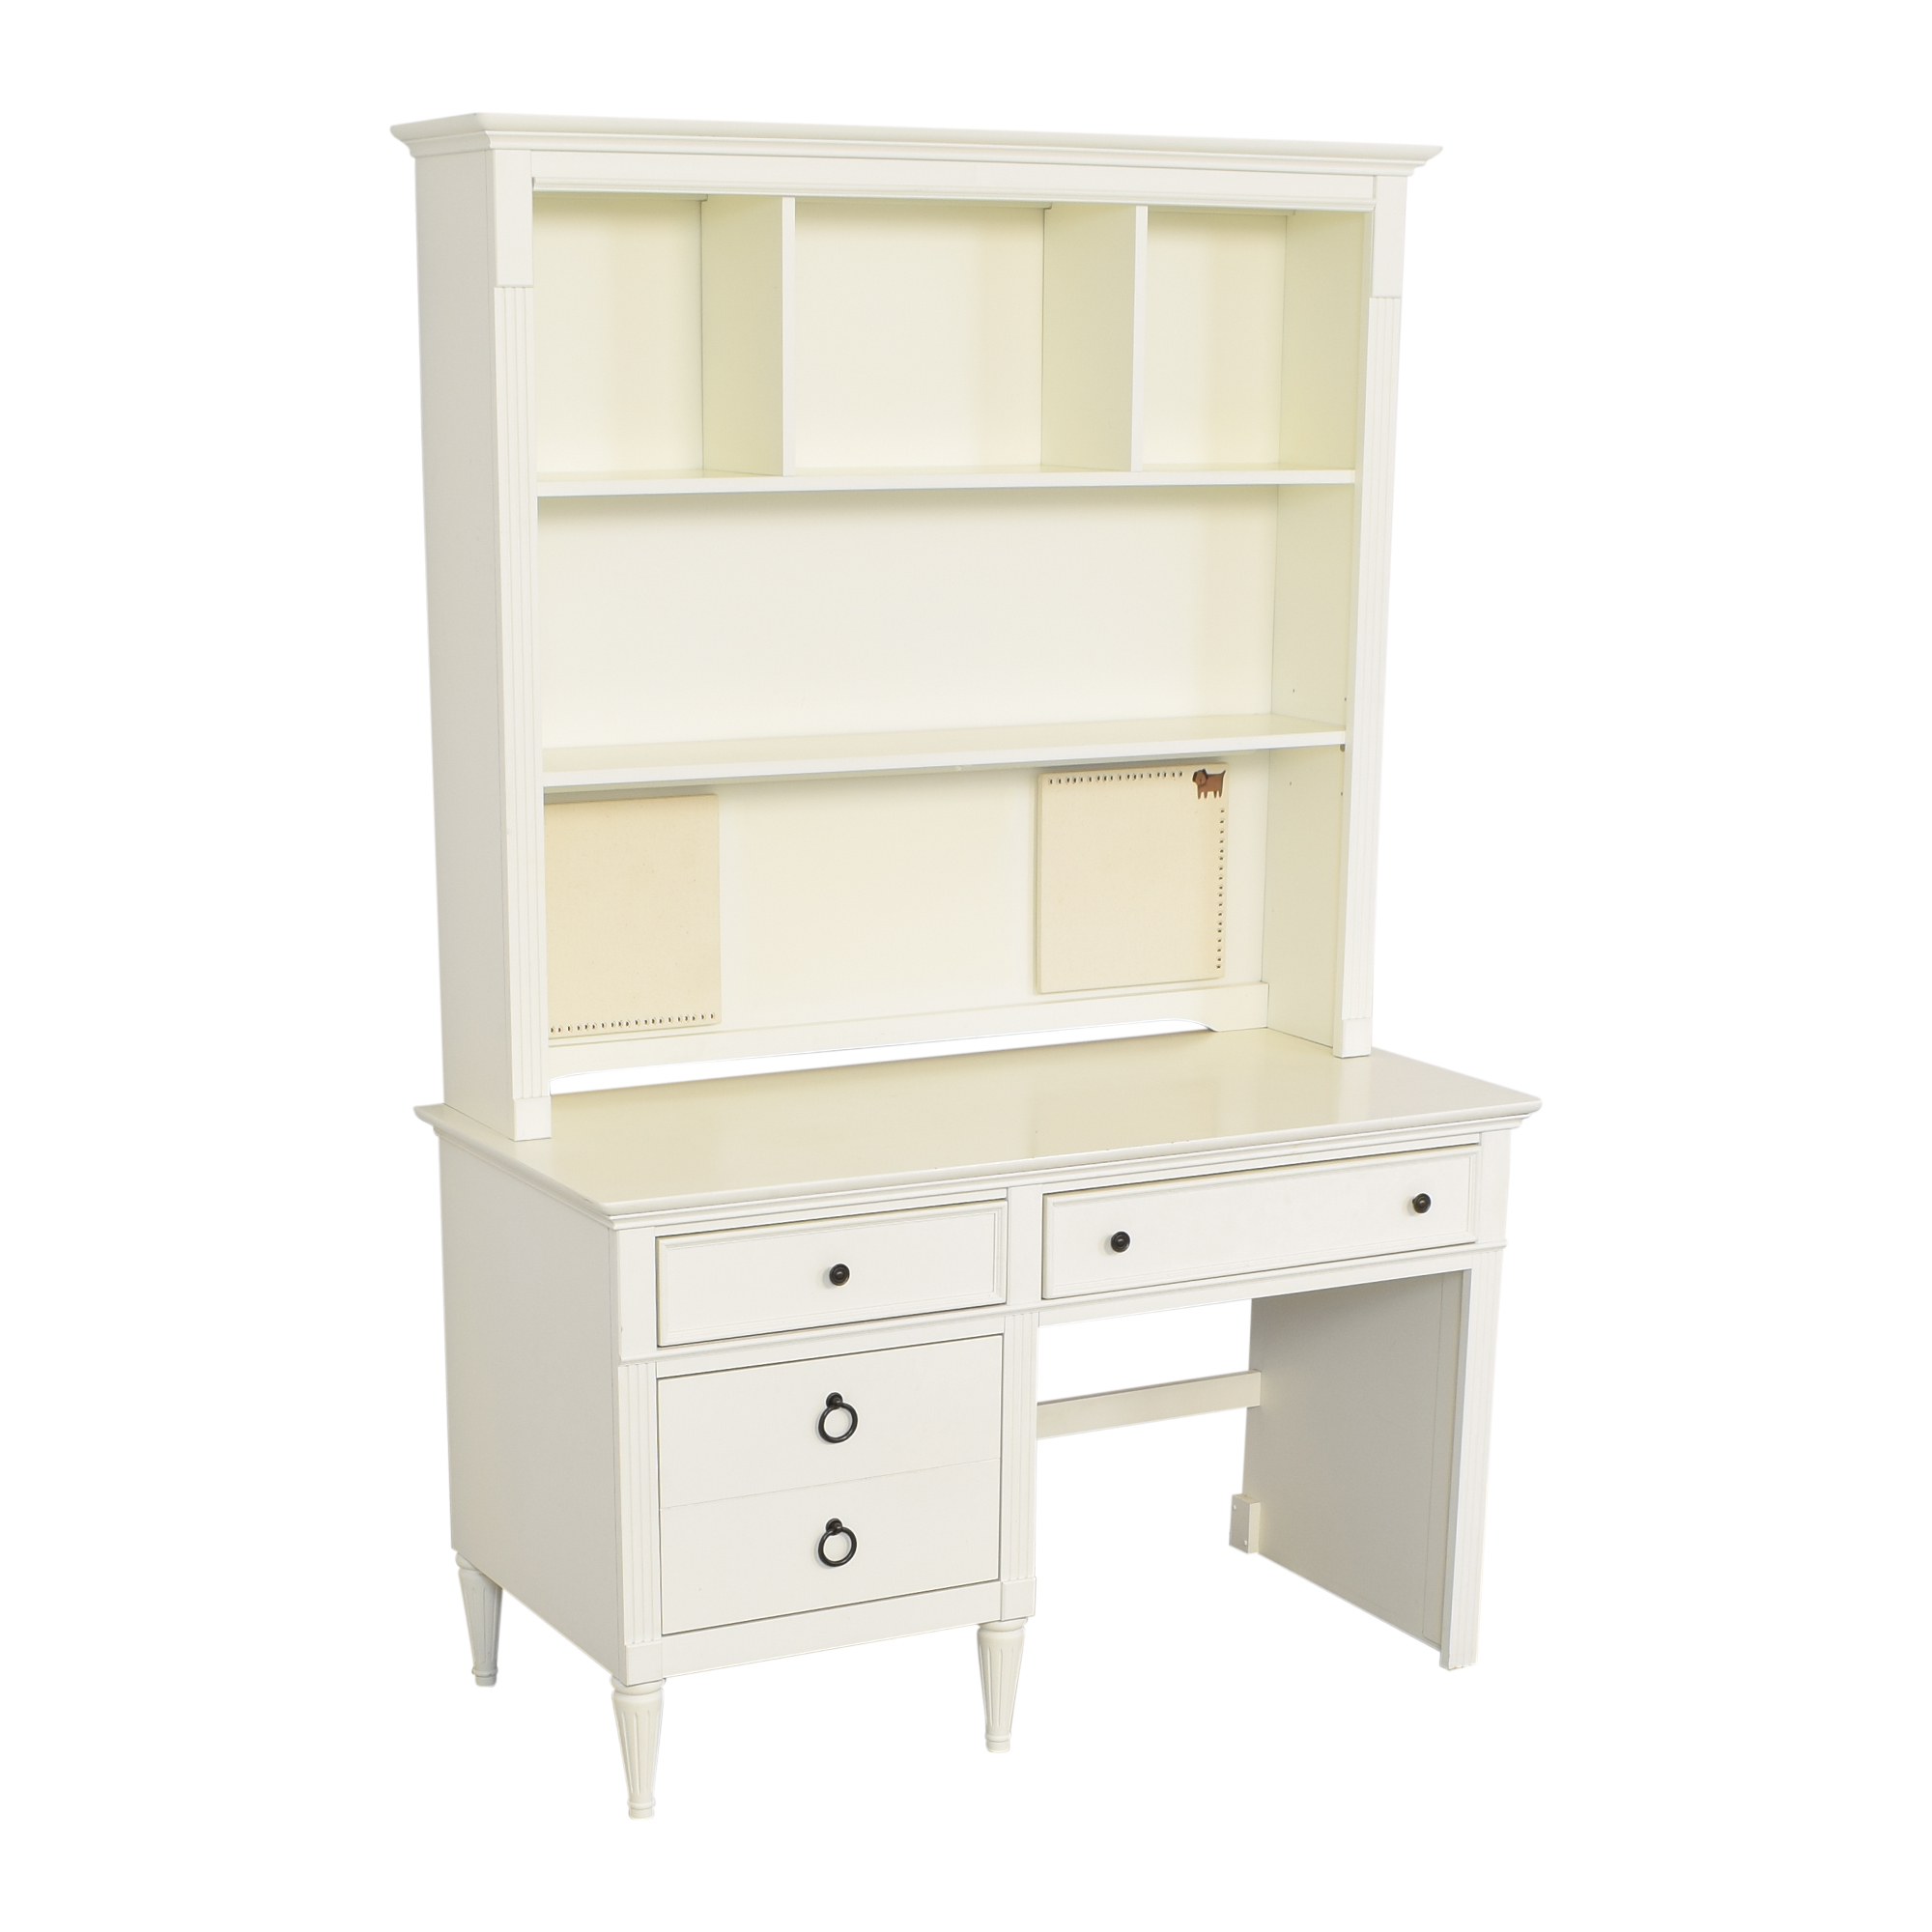 AP Industries Mary-Kate and Ashley Collection Desk with Hutch coupon